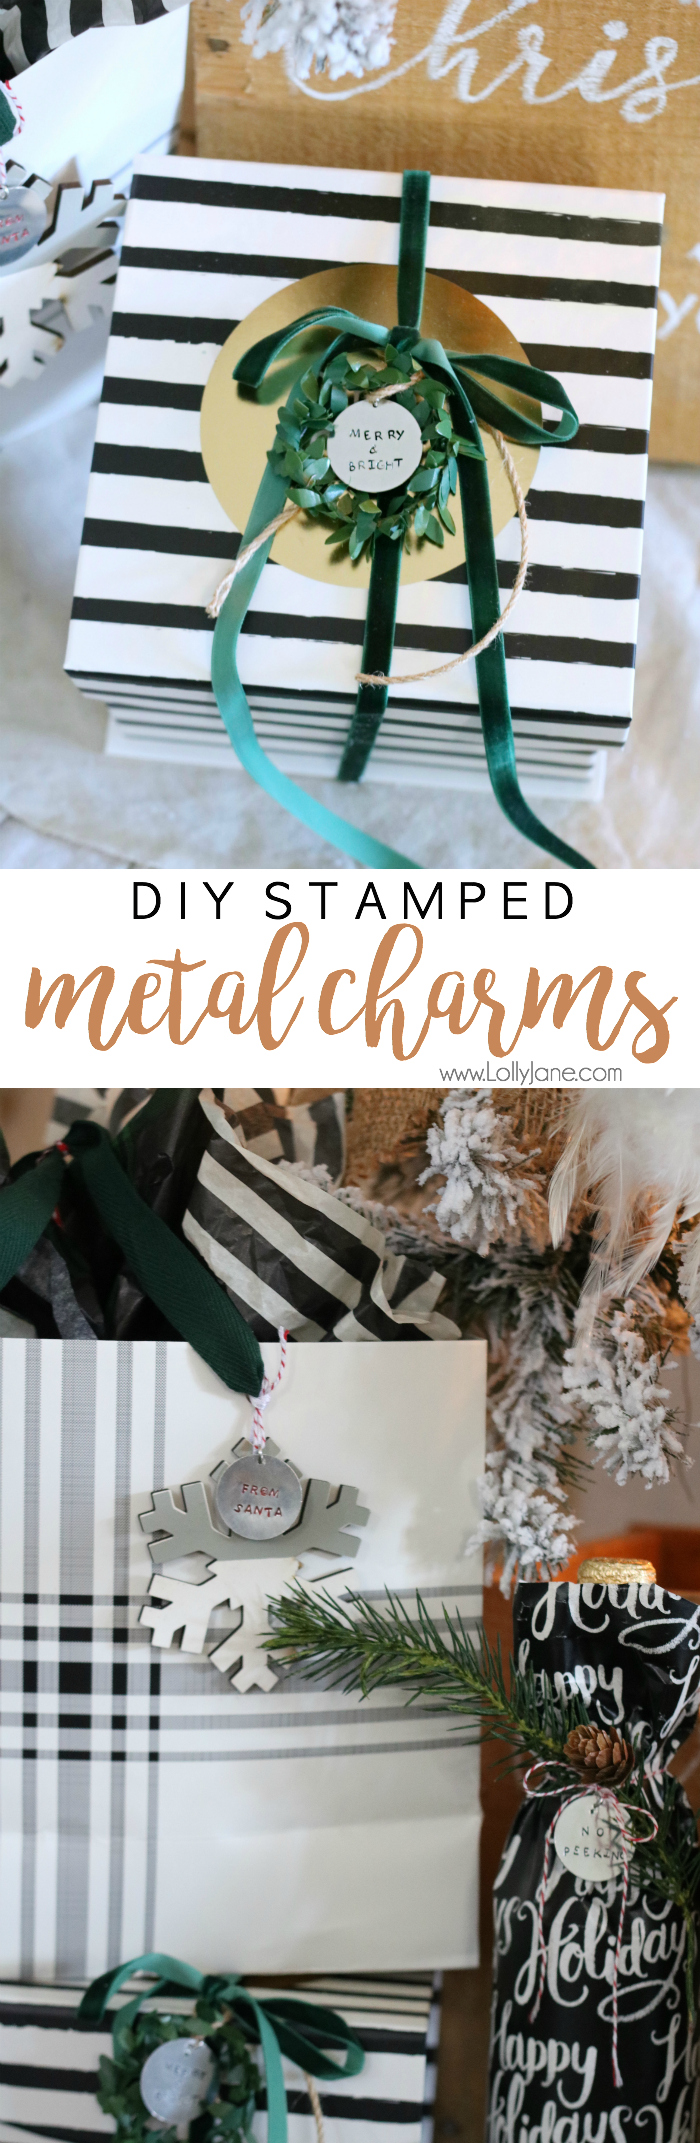 Easy and cute DIY Stamped Metal Charms, cute to add onto a holiday gift or as jewelry!